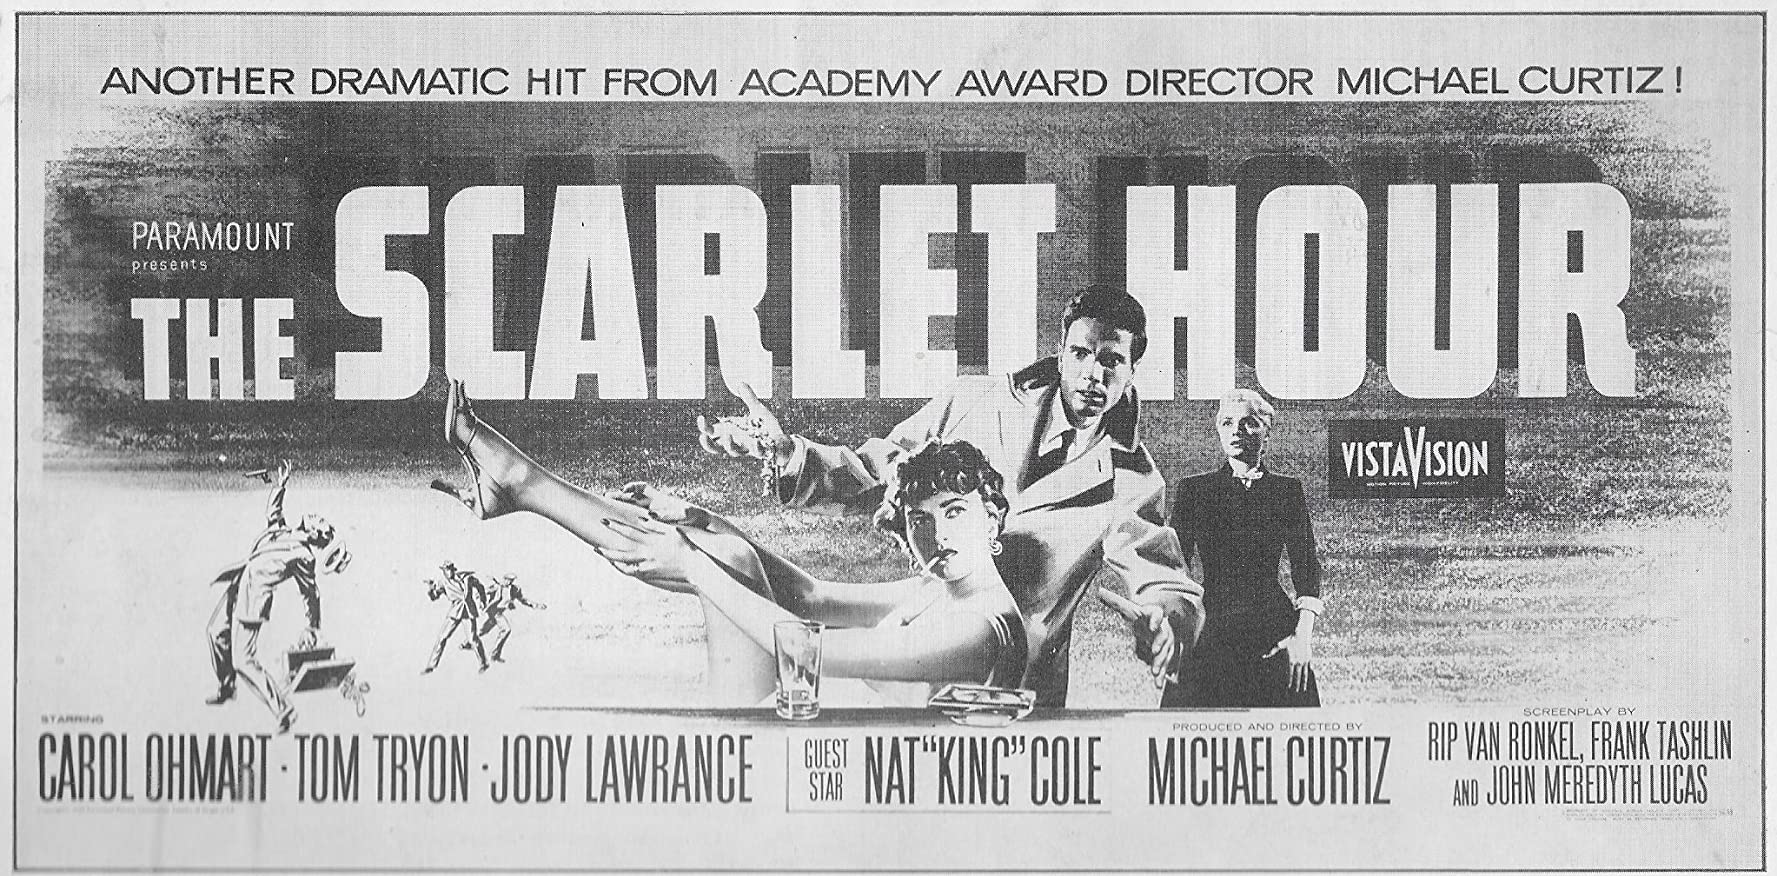 Jody Lawrance, Carol Ohmart, and Tom Tryon in The Scarlet Hour (1956)